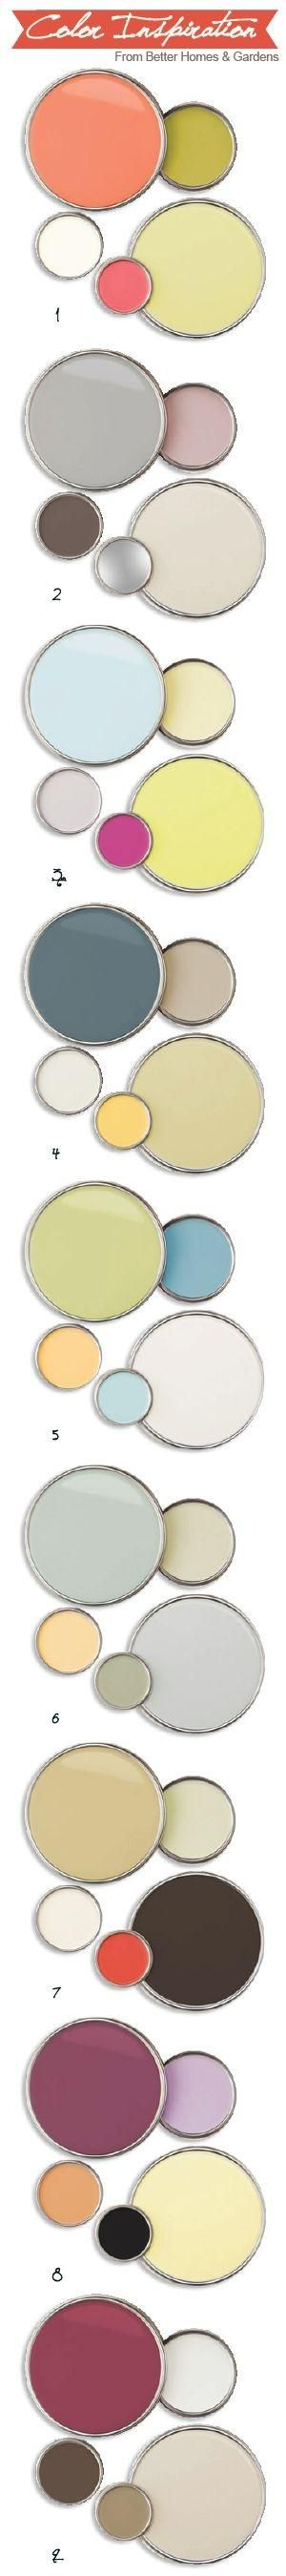 Better Homes & Gardens color palette inspirations by mable